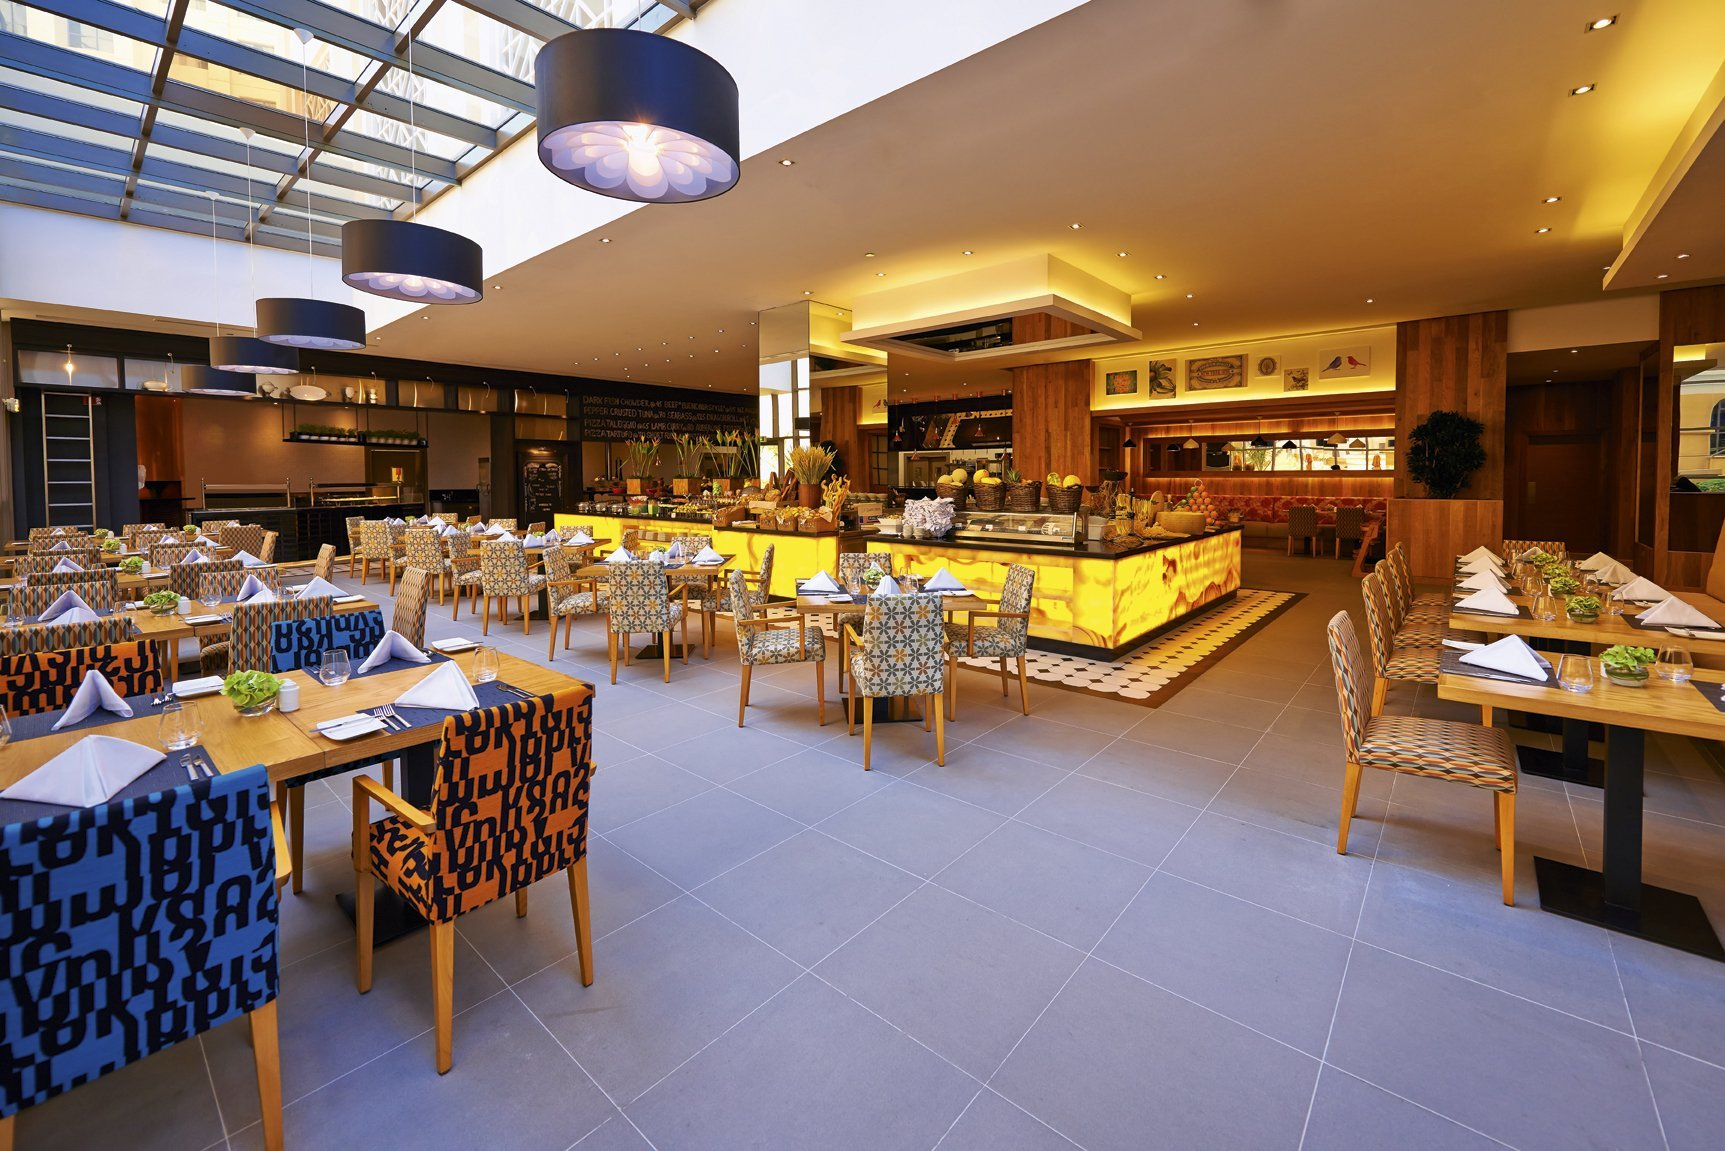 The Talk Restaurant at Mövenpick Hotel Jumeirah Beach